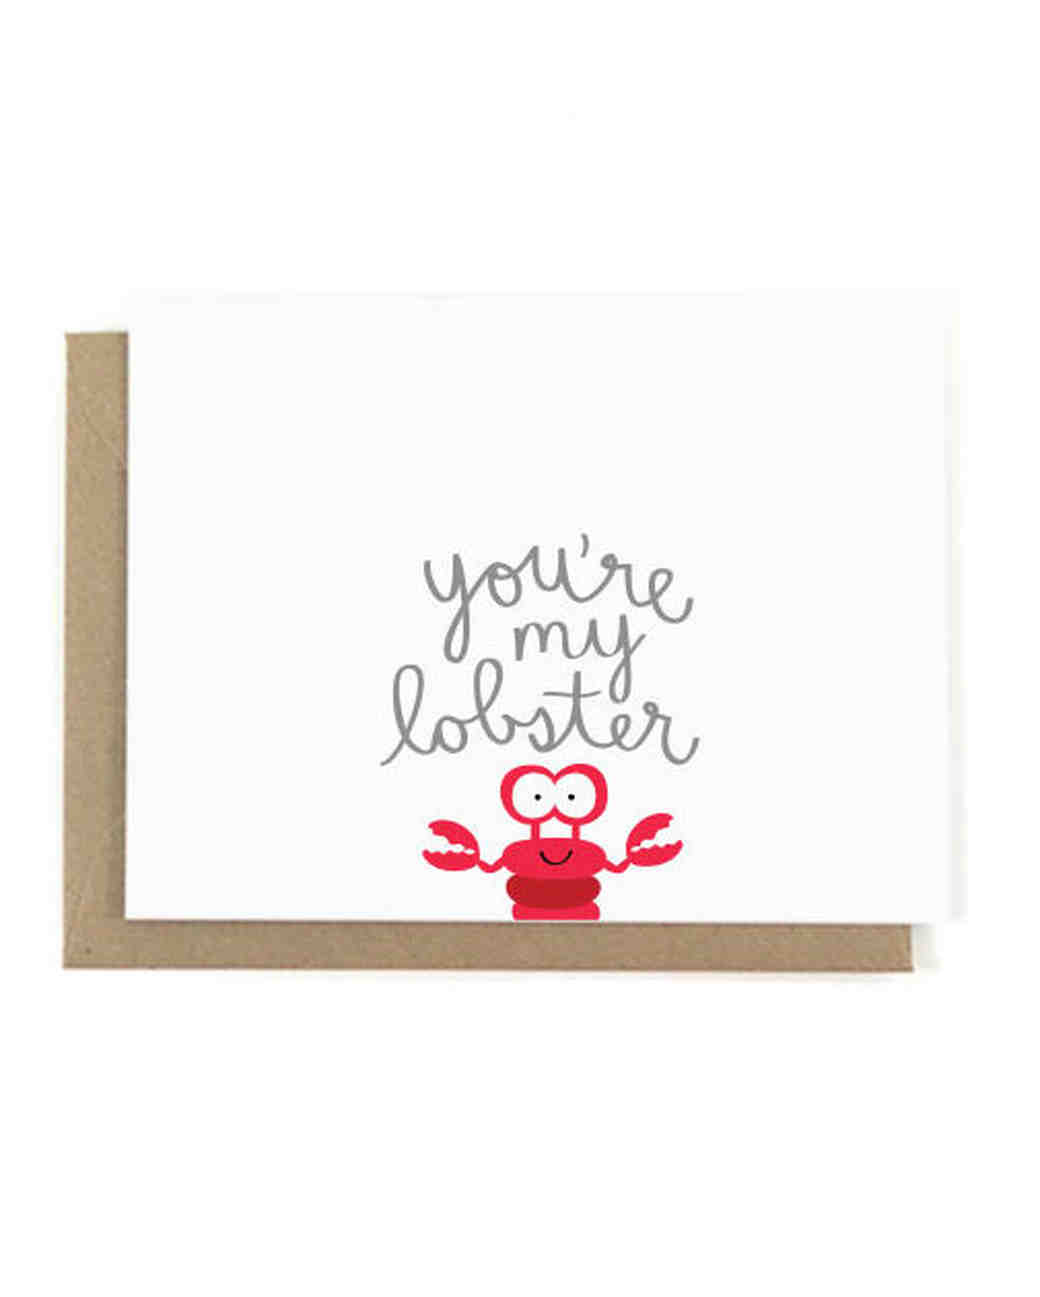 funny-valentines-card-youre-my-lobster-0216.jpg